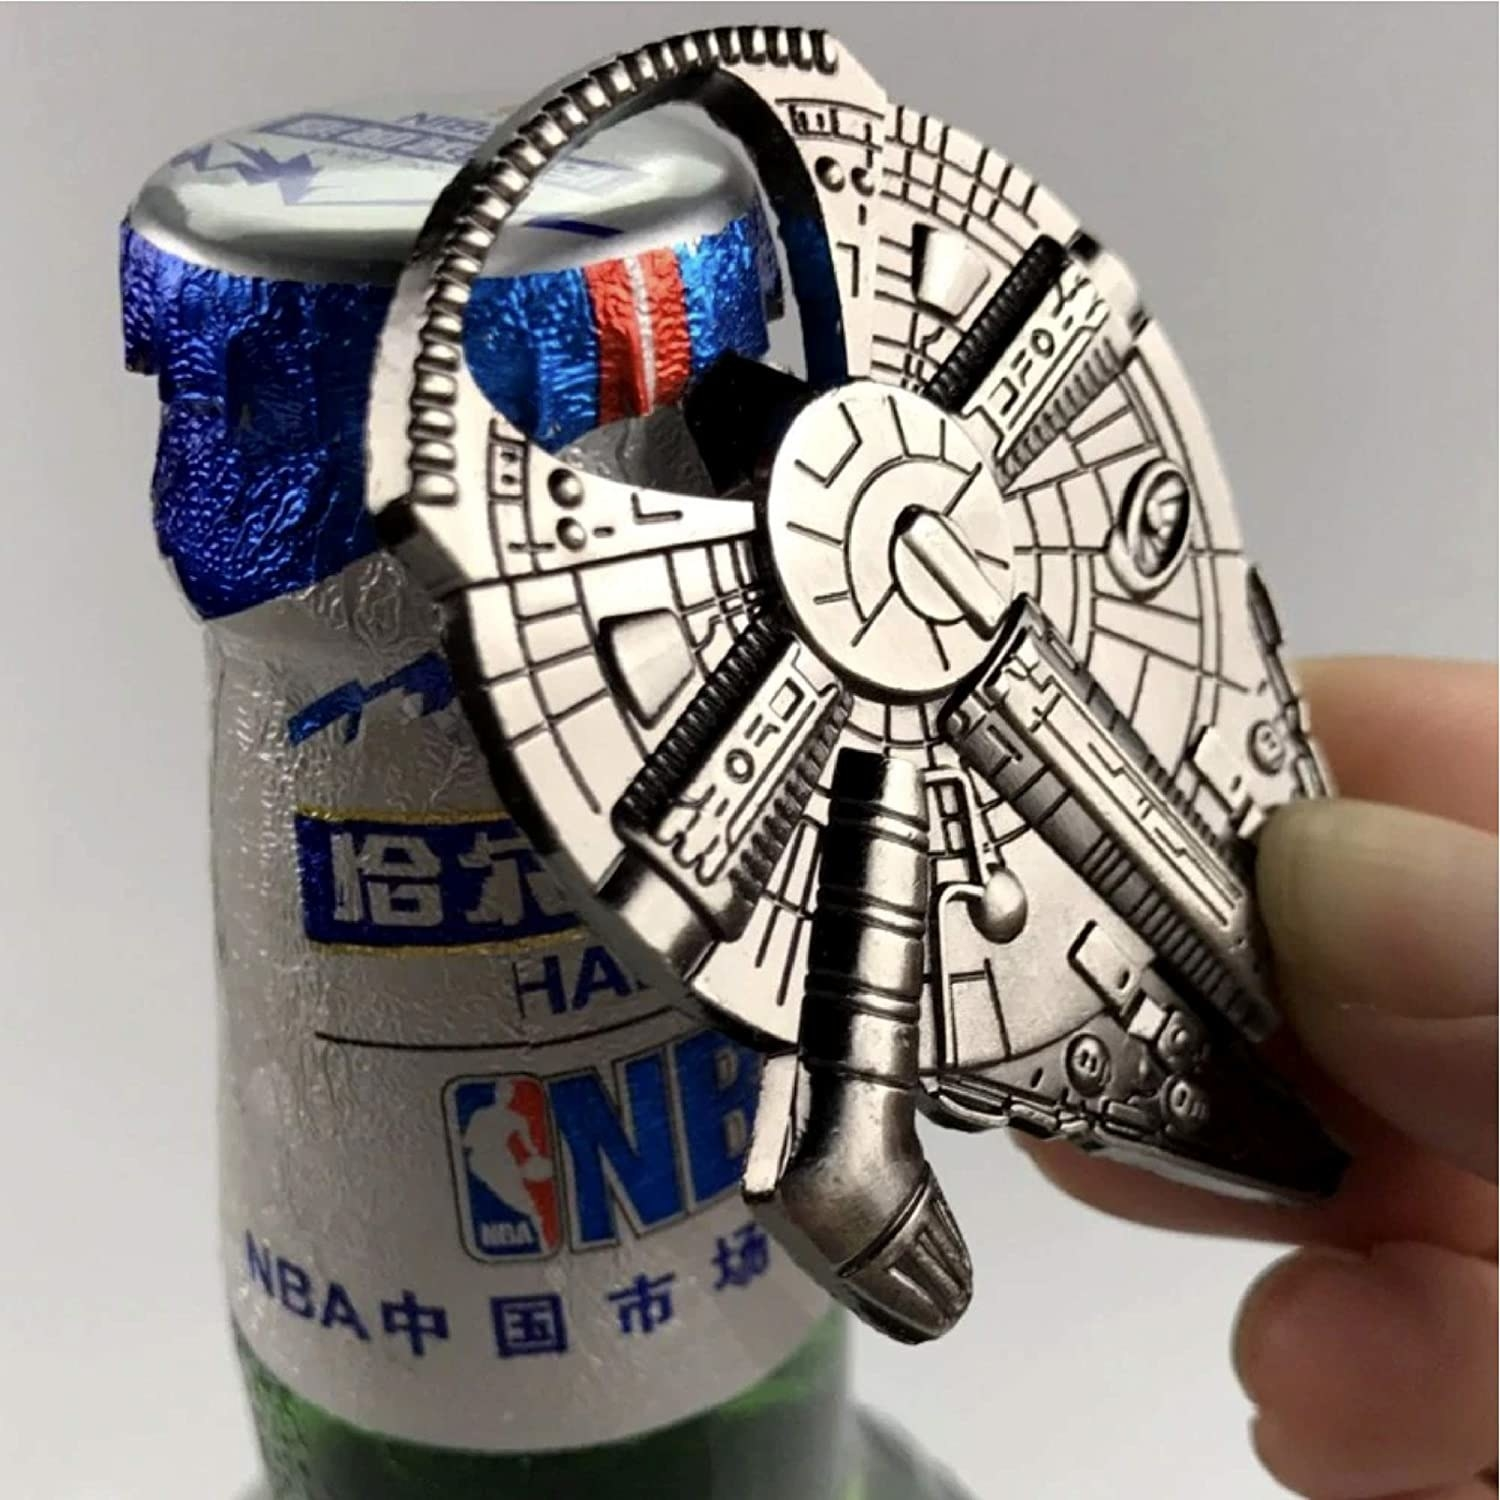 A person using the bottle opener on a beer